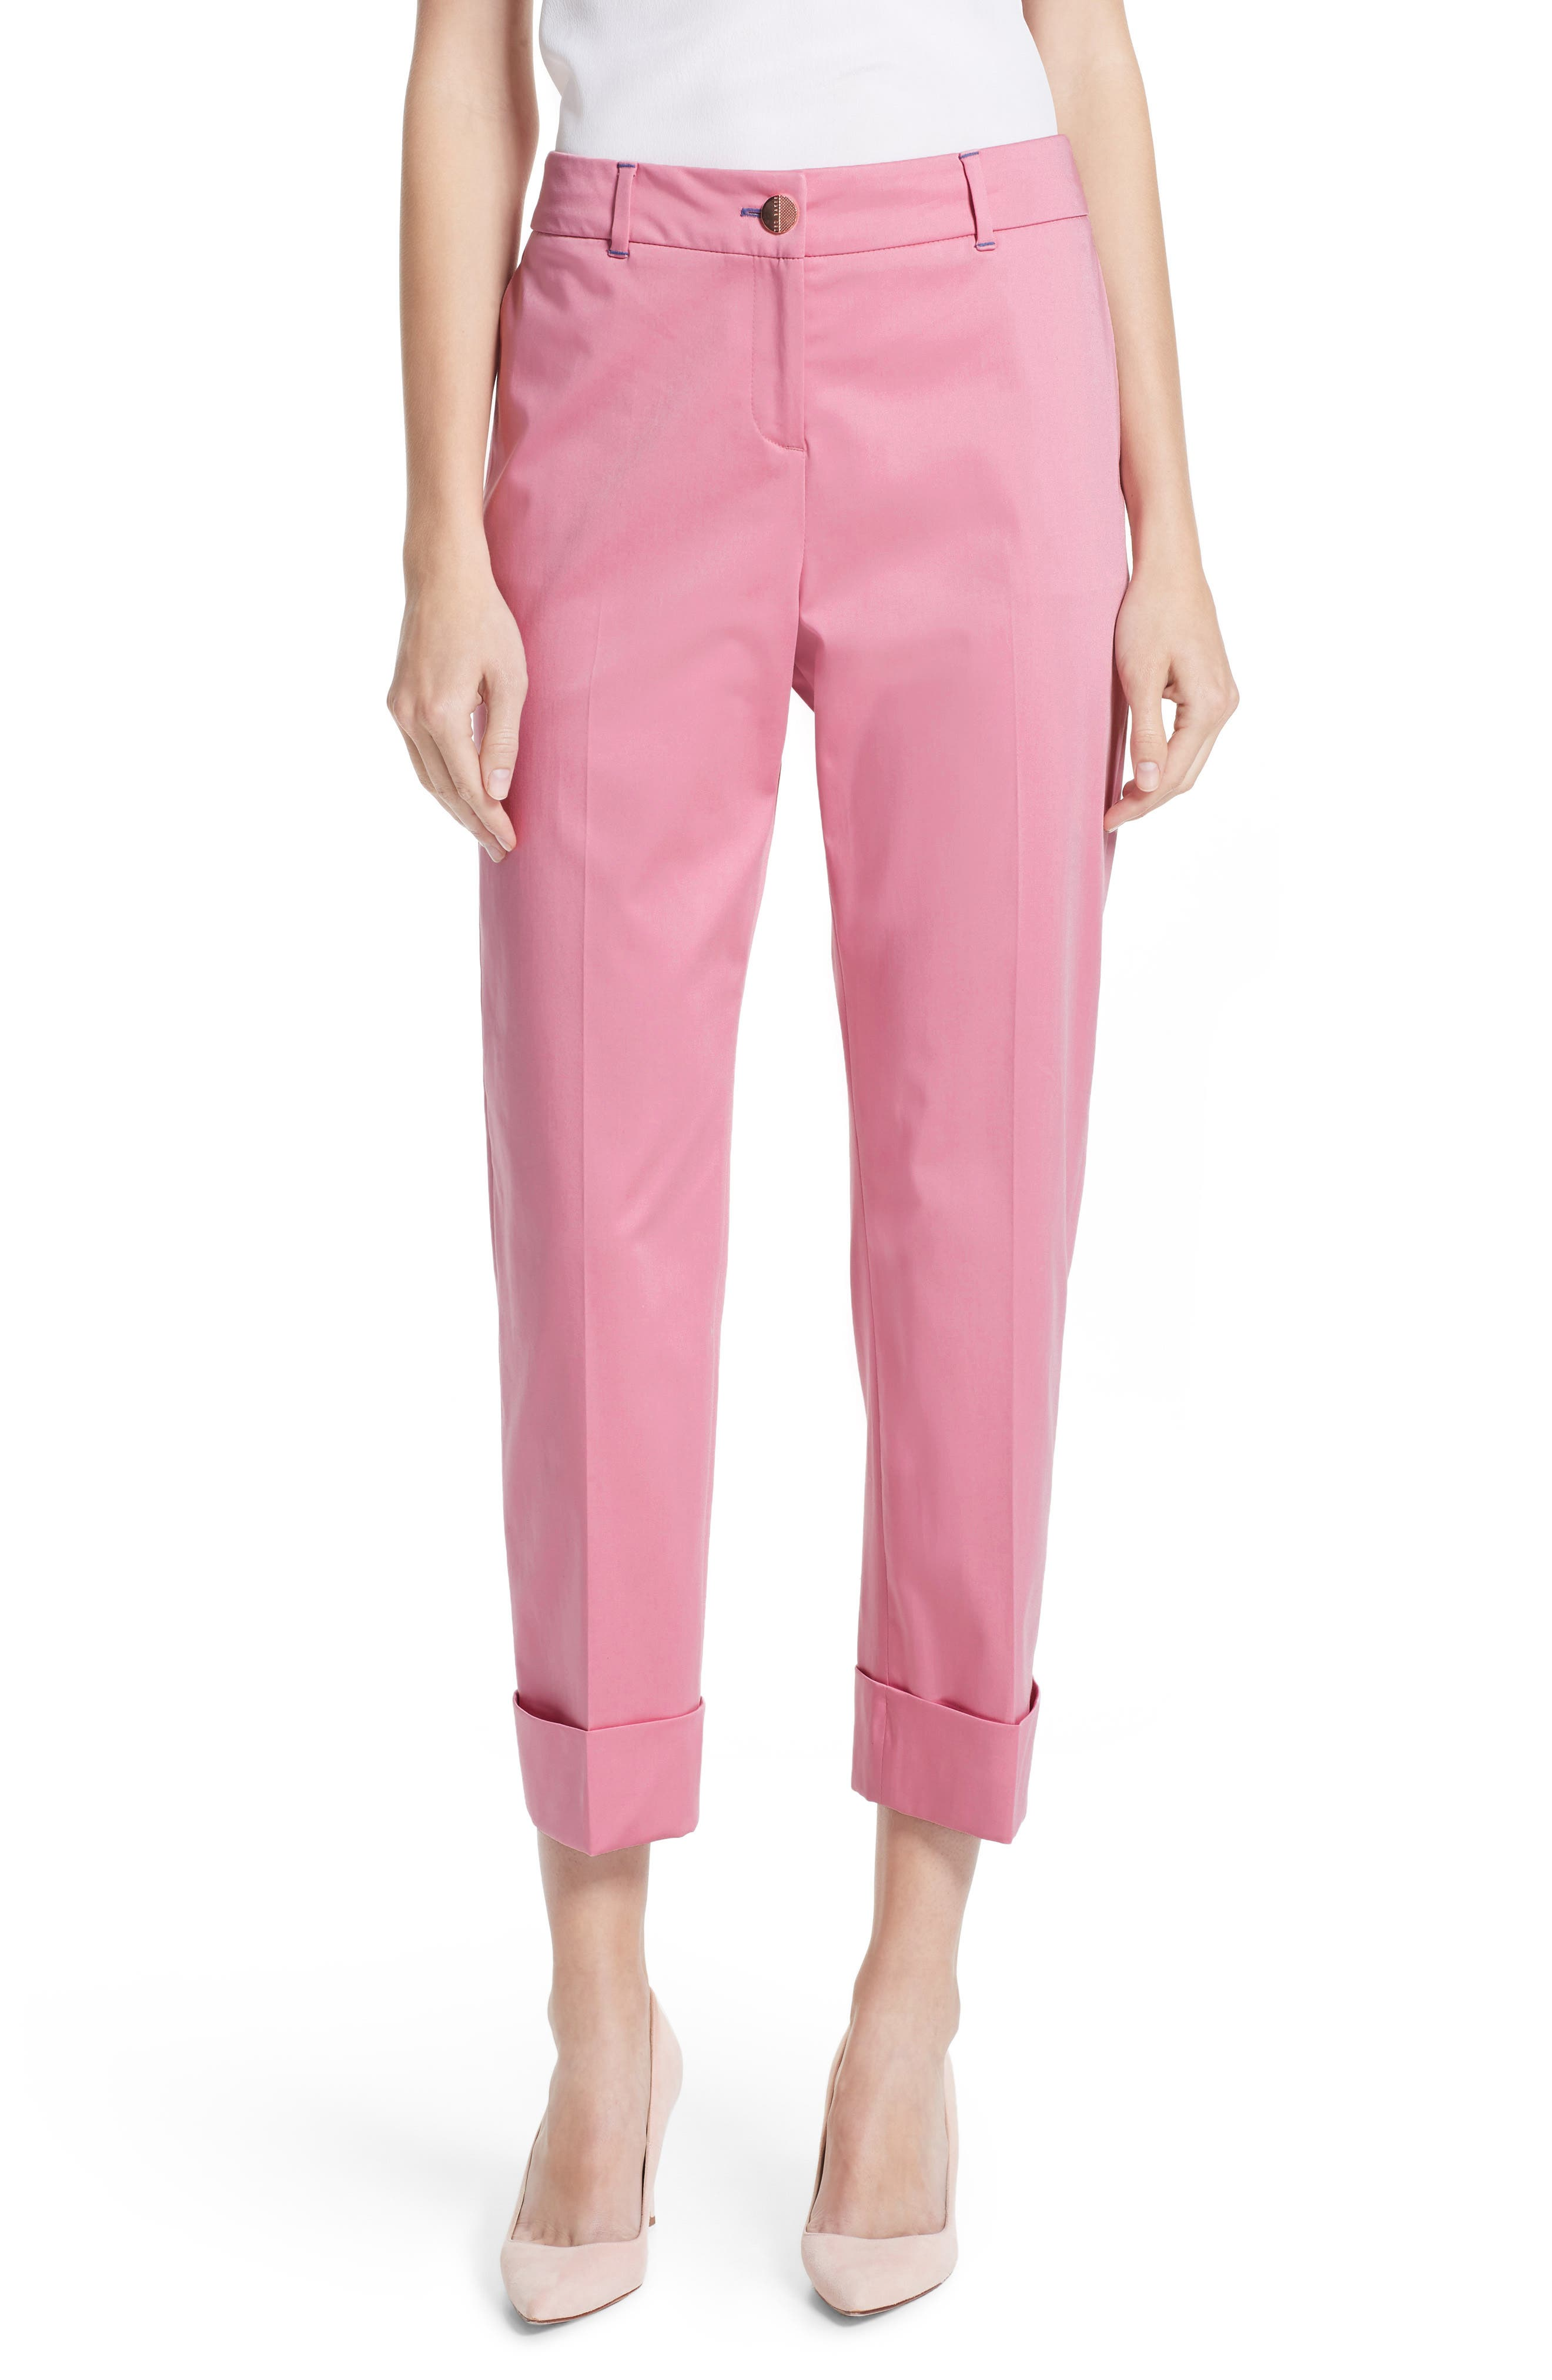 Saydii Deep Cuff Stretch Cotton Chino Pants,                         Main,                         color, Dusky Pink